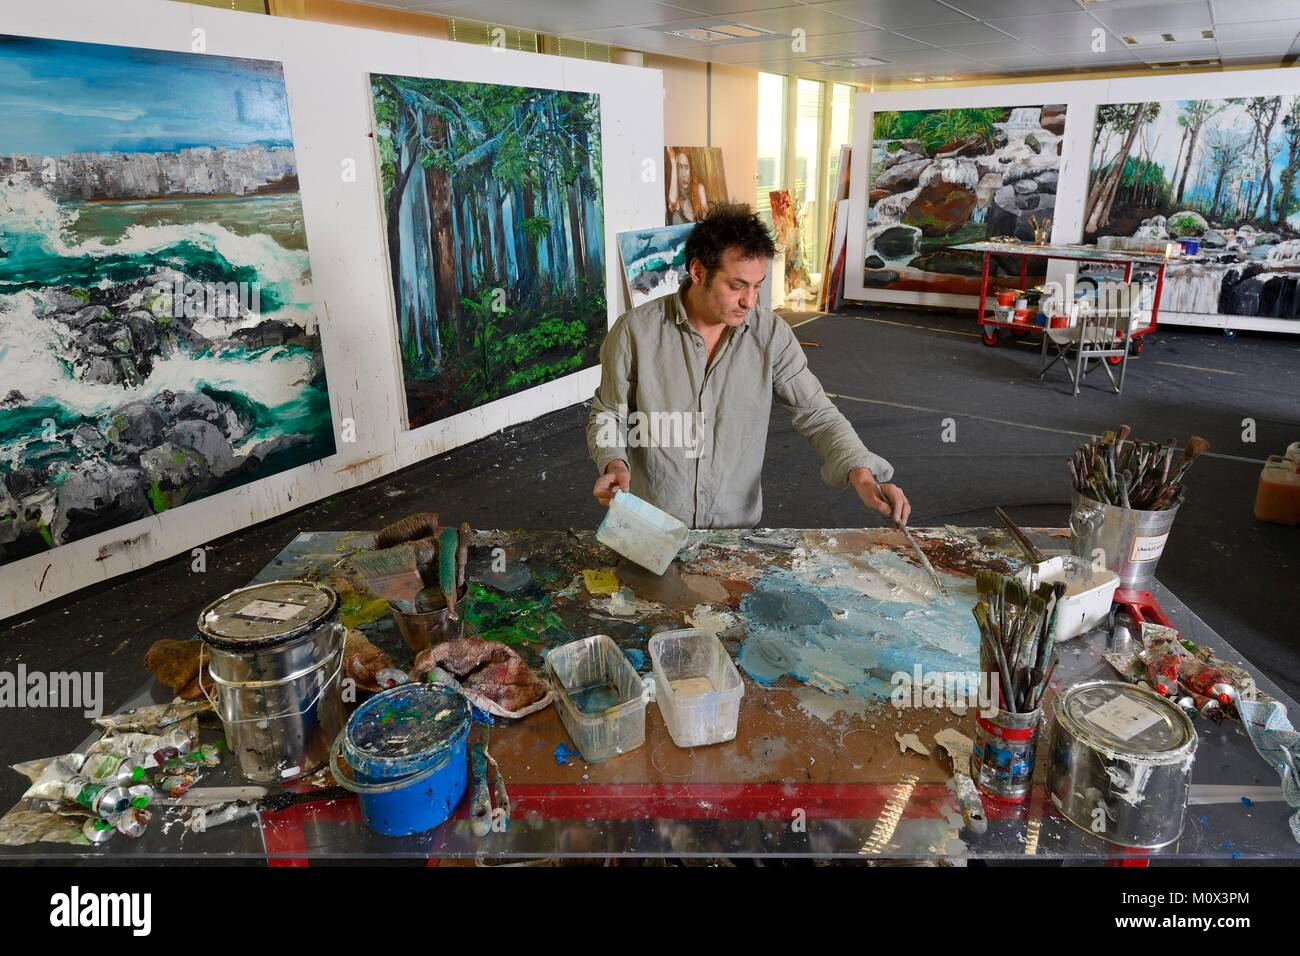 France,Val d'Oise,Gonesse,the artist Fred Kleinberg workshop within the company Manutan - Stock Image